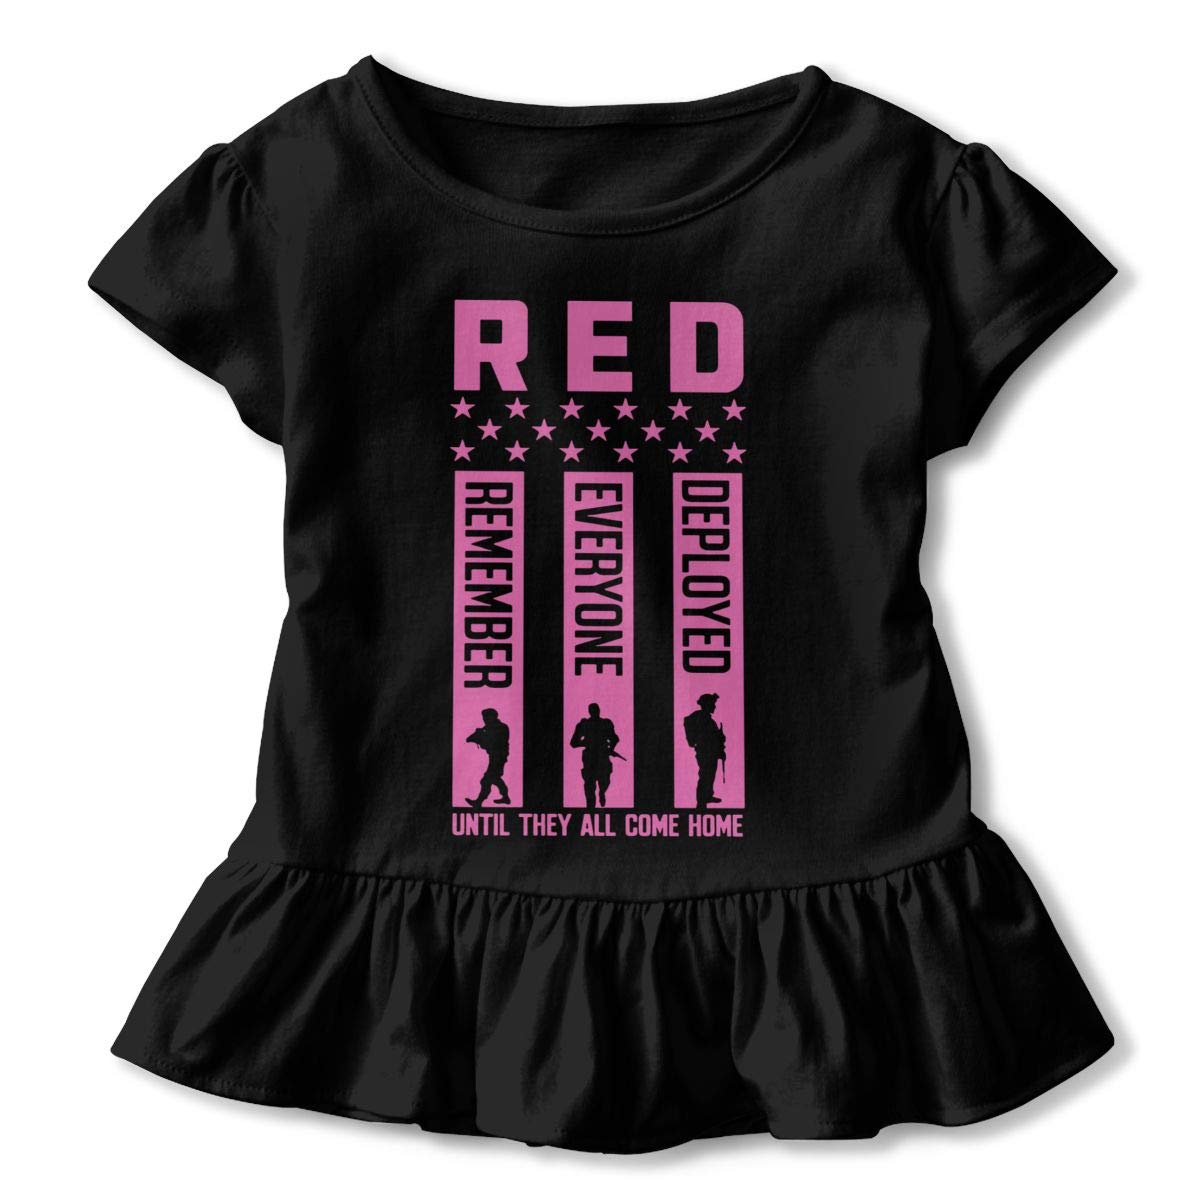 Red Friday Remember Everyone Deployed Baby Girls Short Sleeve Ruffles T-Shirt Tops 2-Pack Cotton Tee